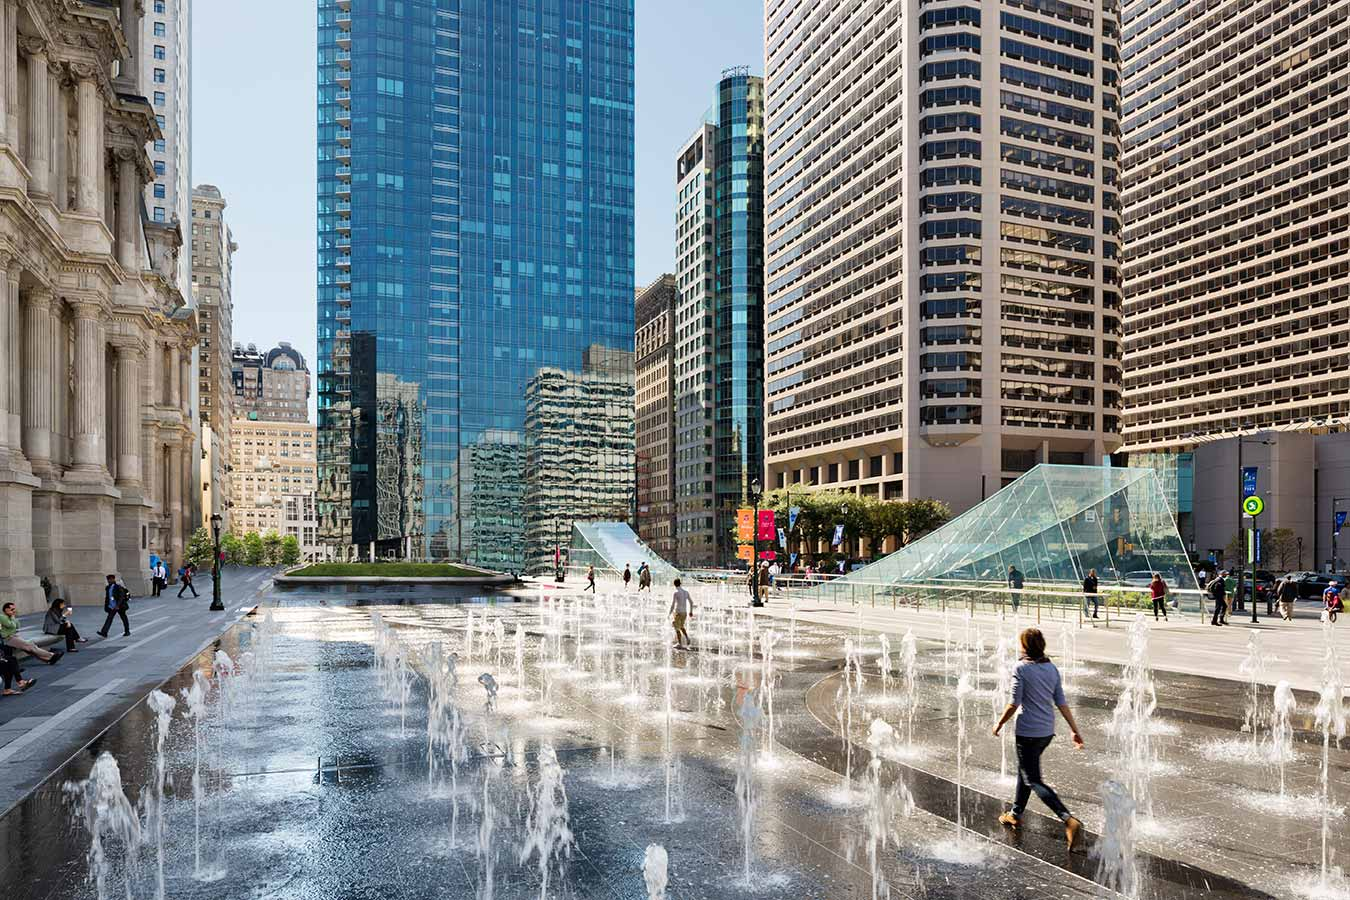 Dilworth park the ritz carlton residences 20H bryant wilde realty3.jpg